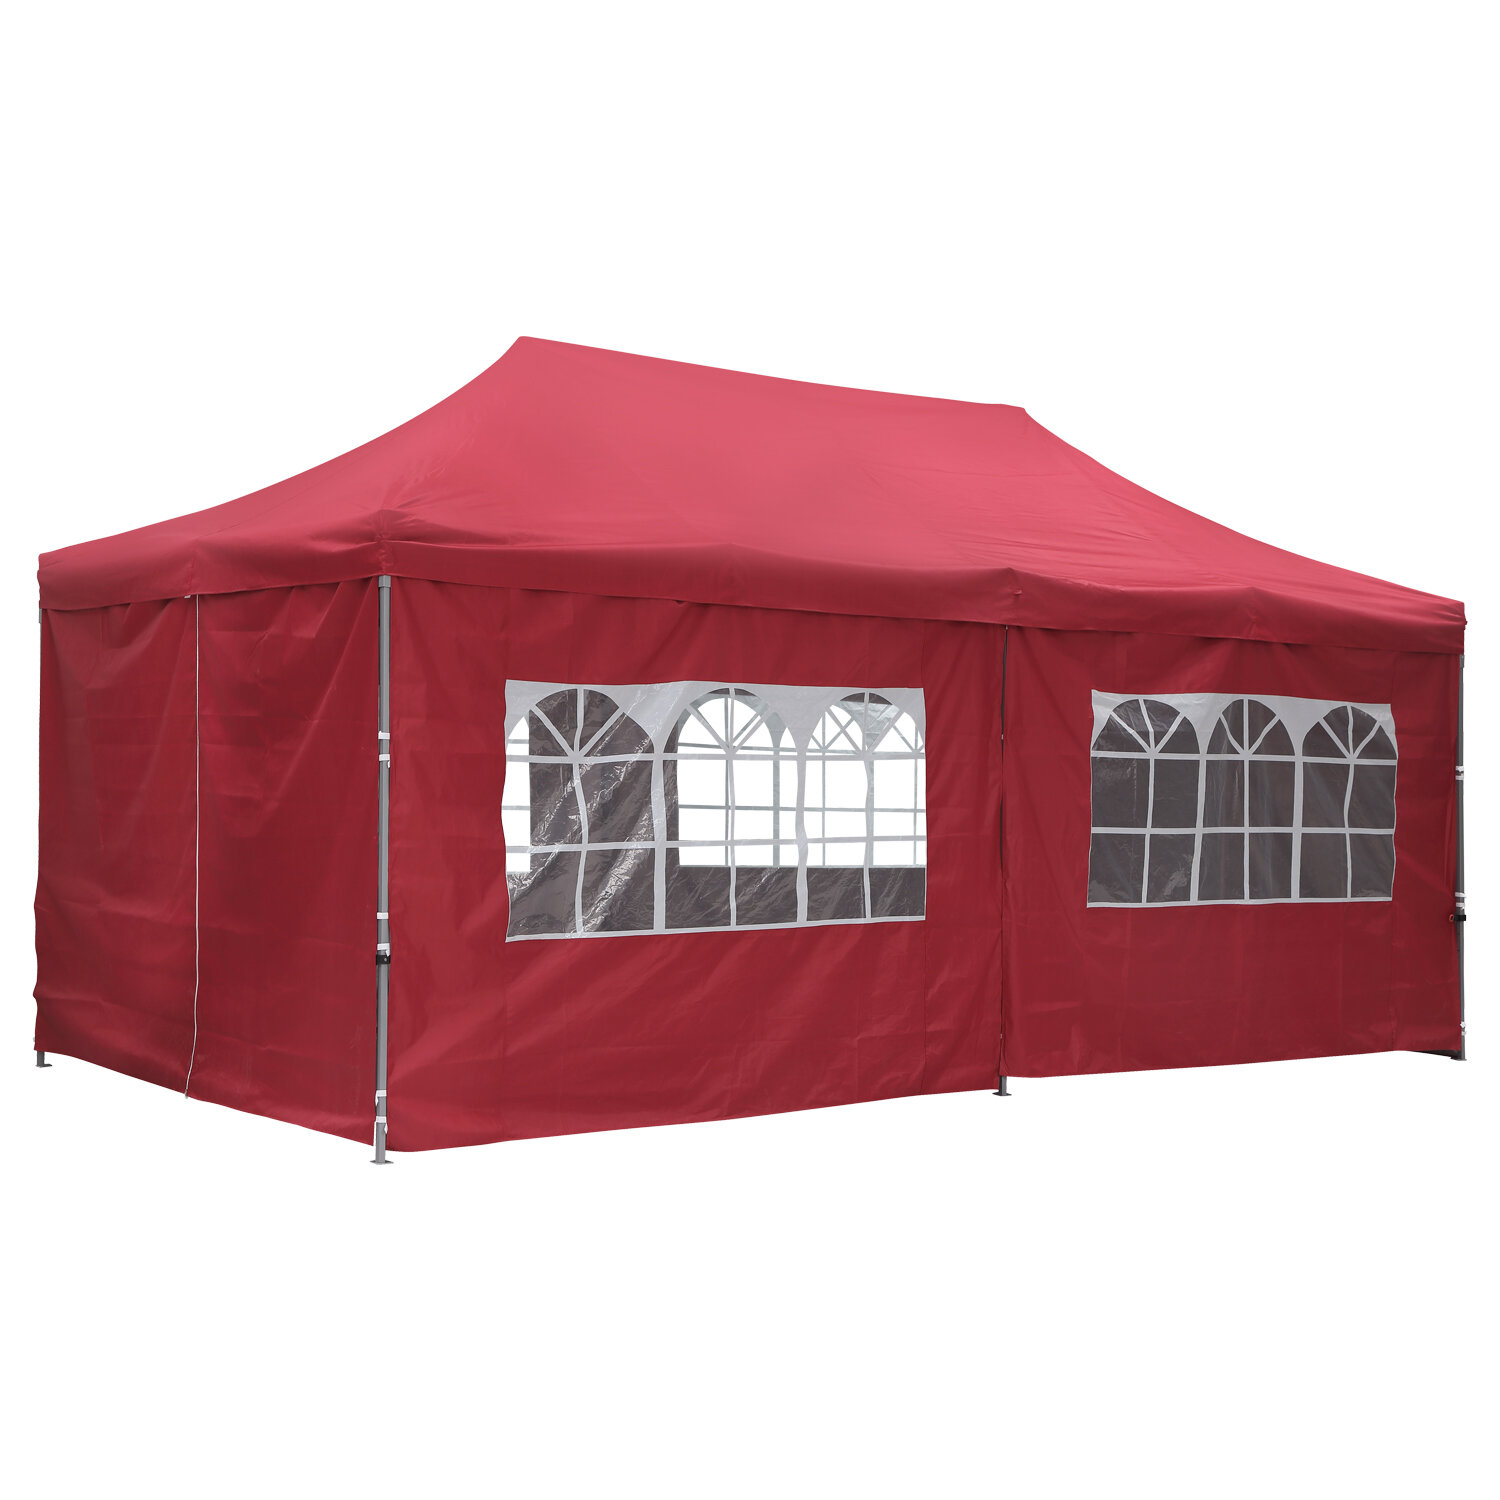 Zenova 20 Ft W X 10 Ft D Steel Pop Up Canopy Wayfair